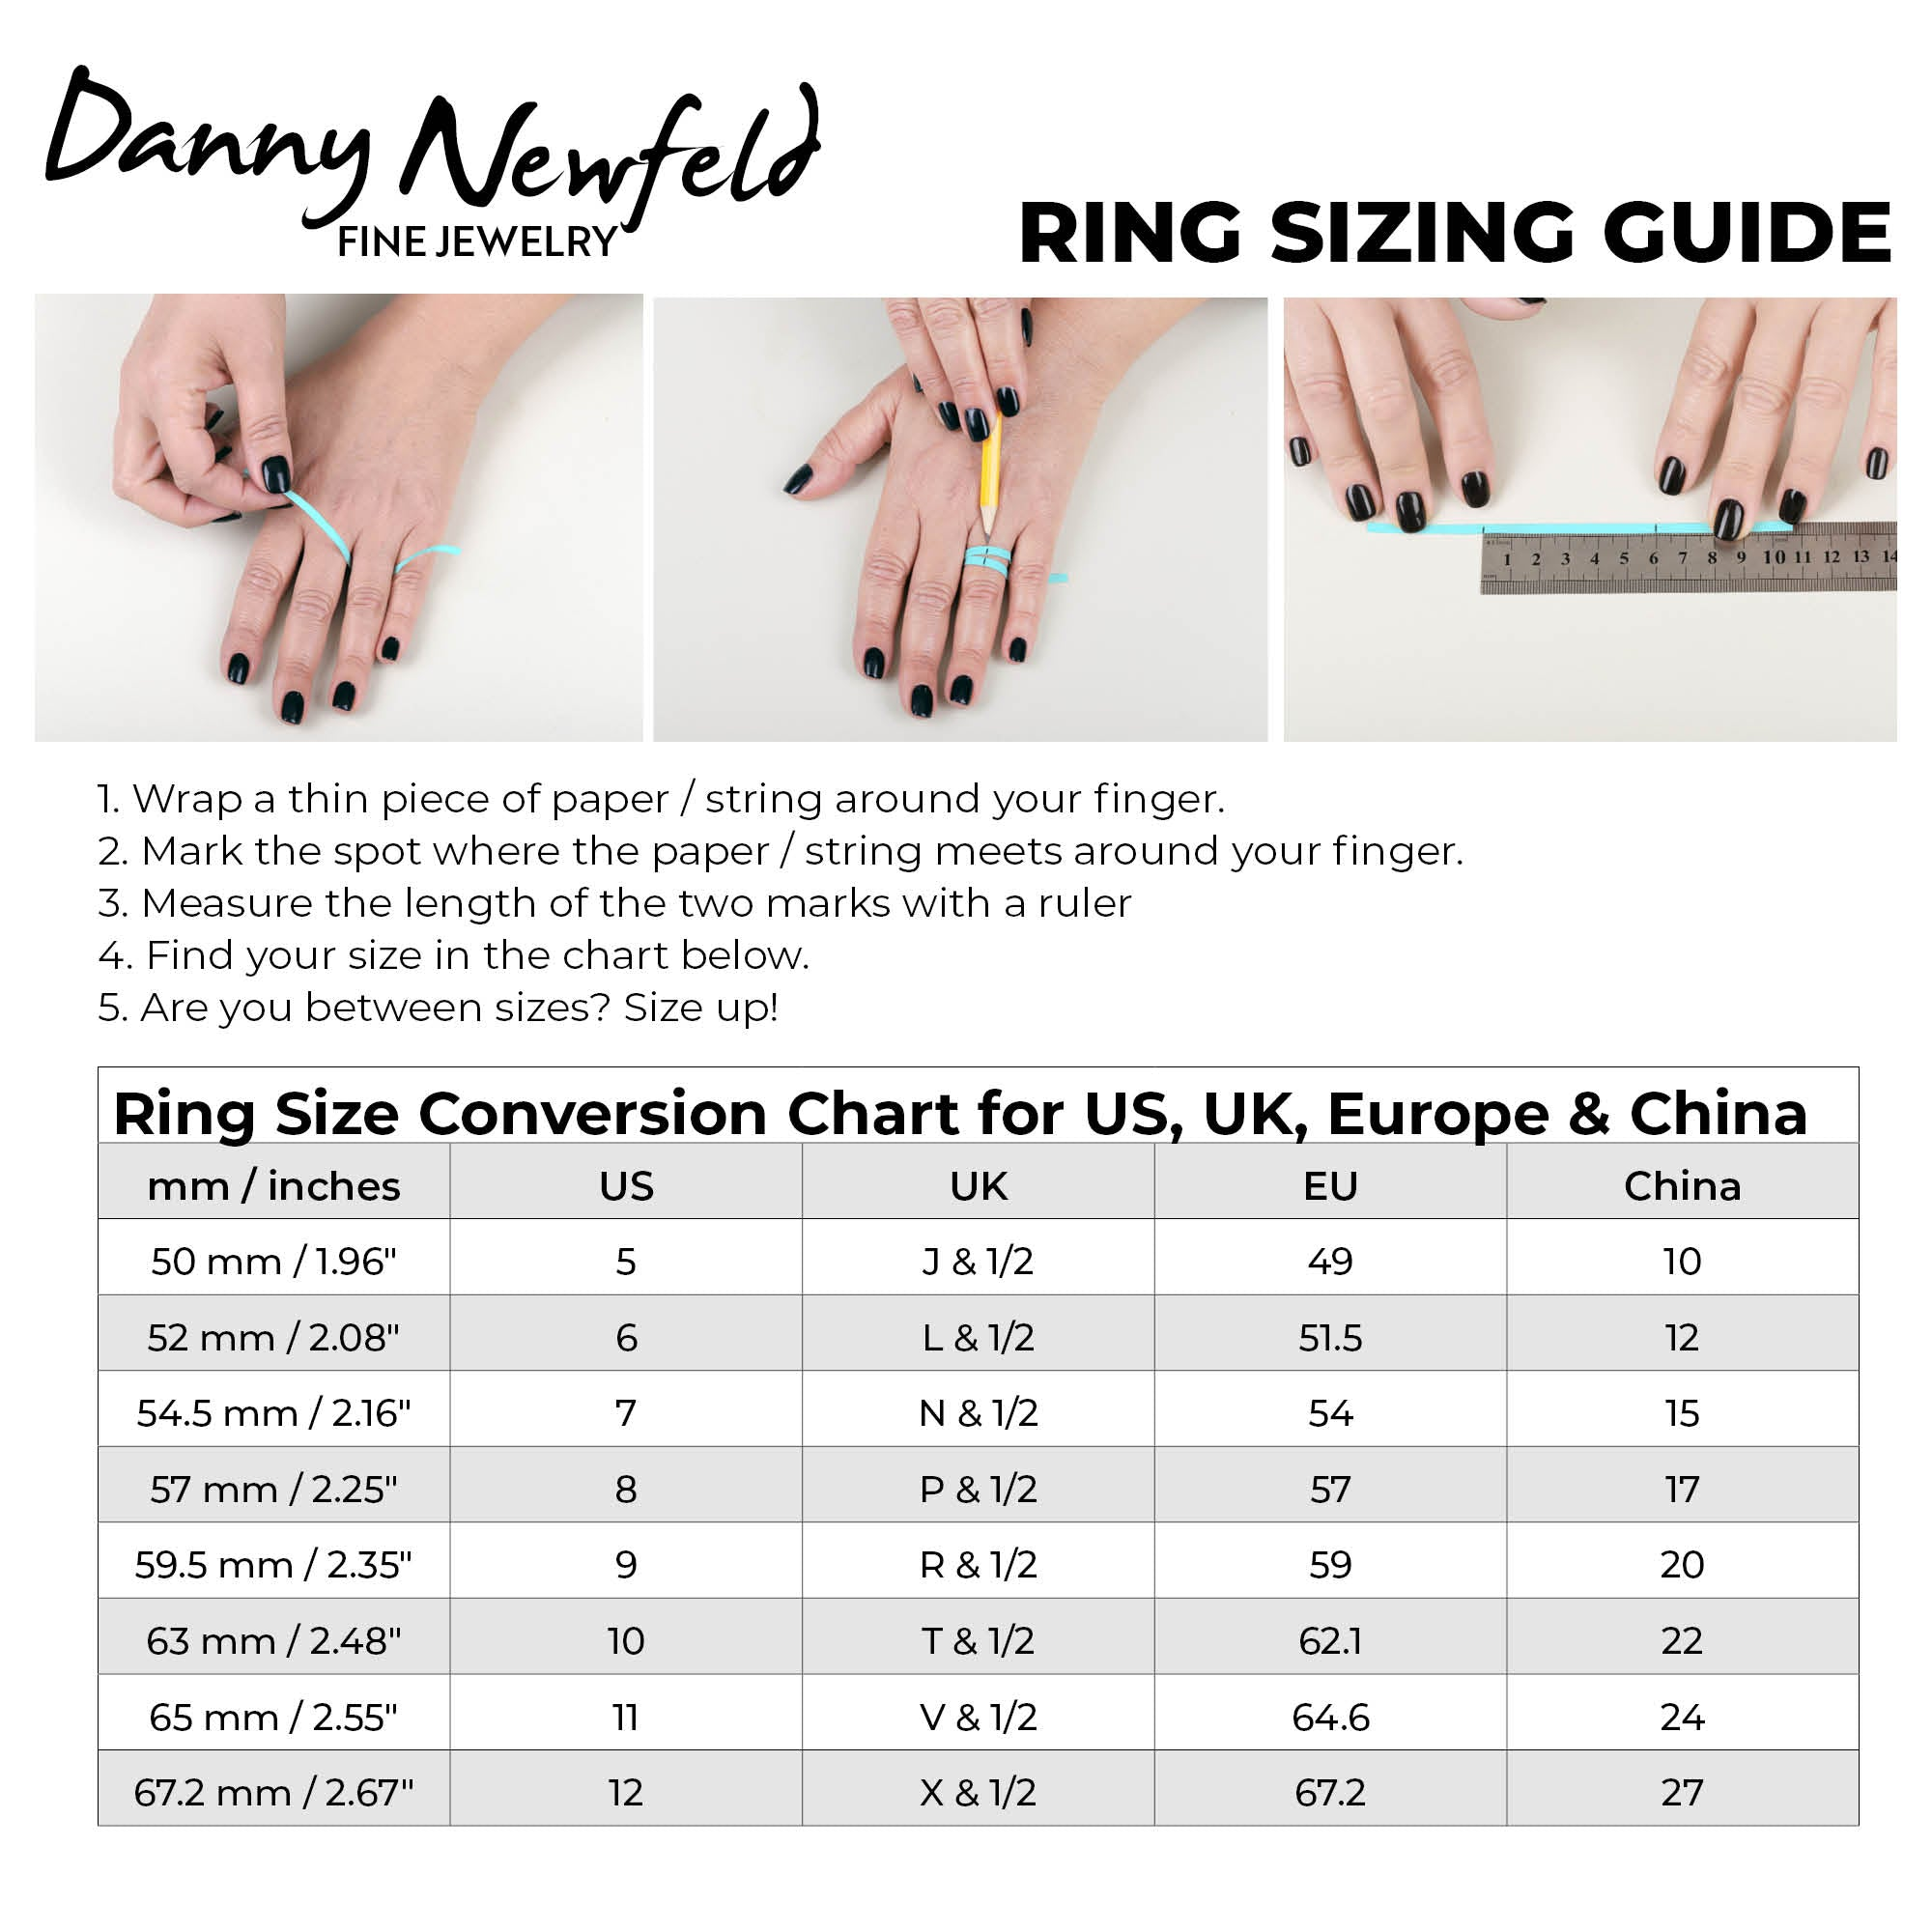 ring sizing chart danny newfeld collection